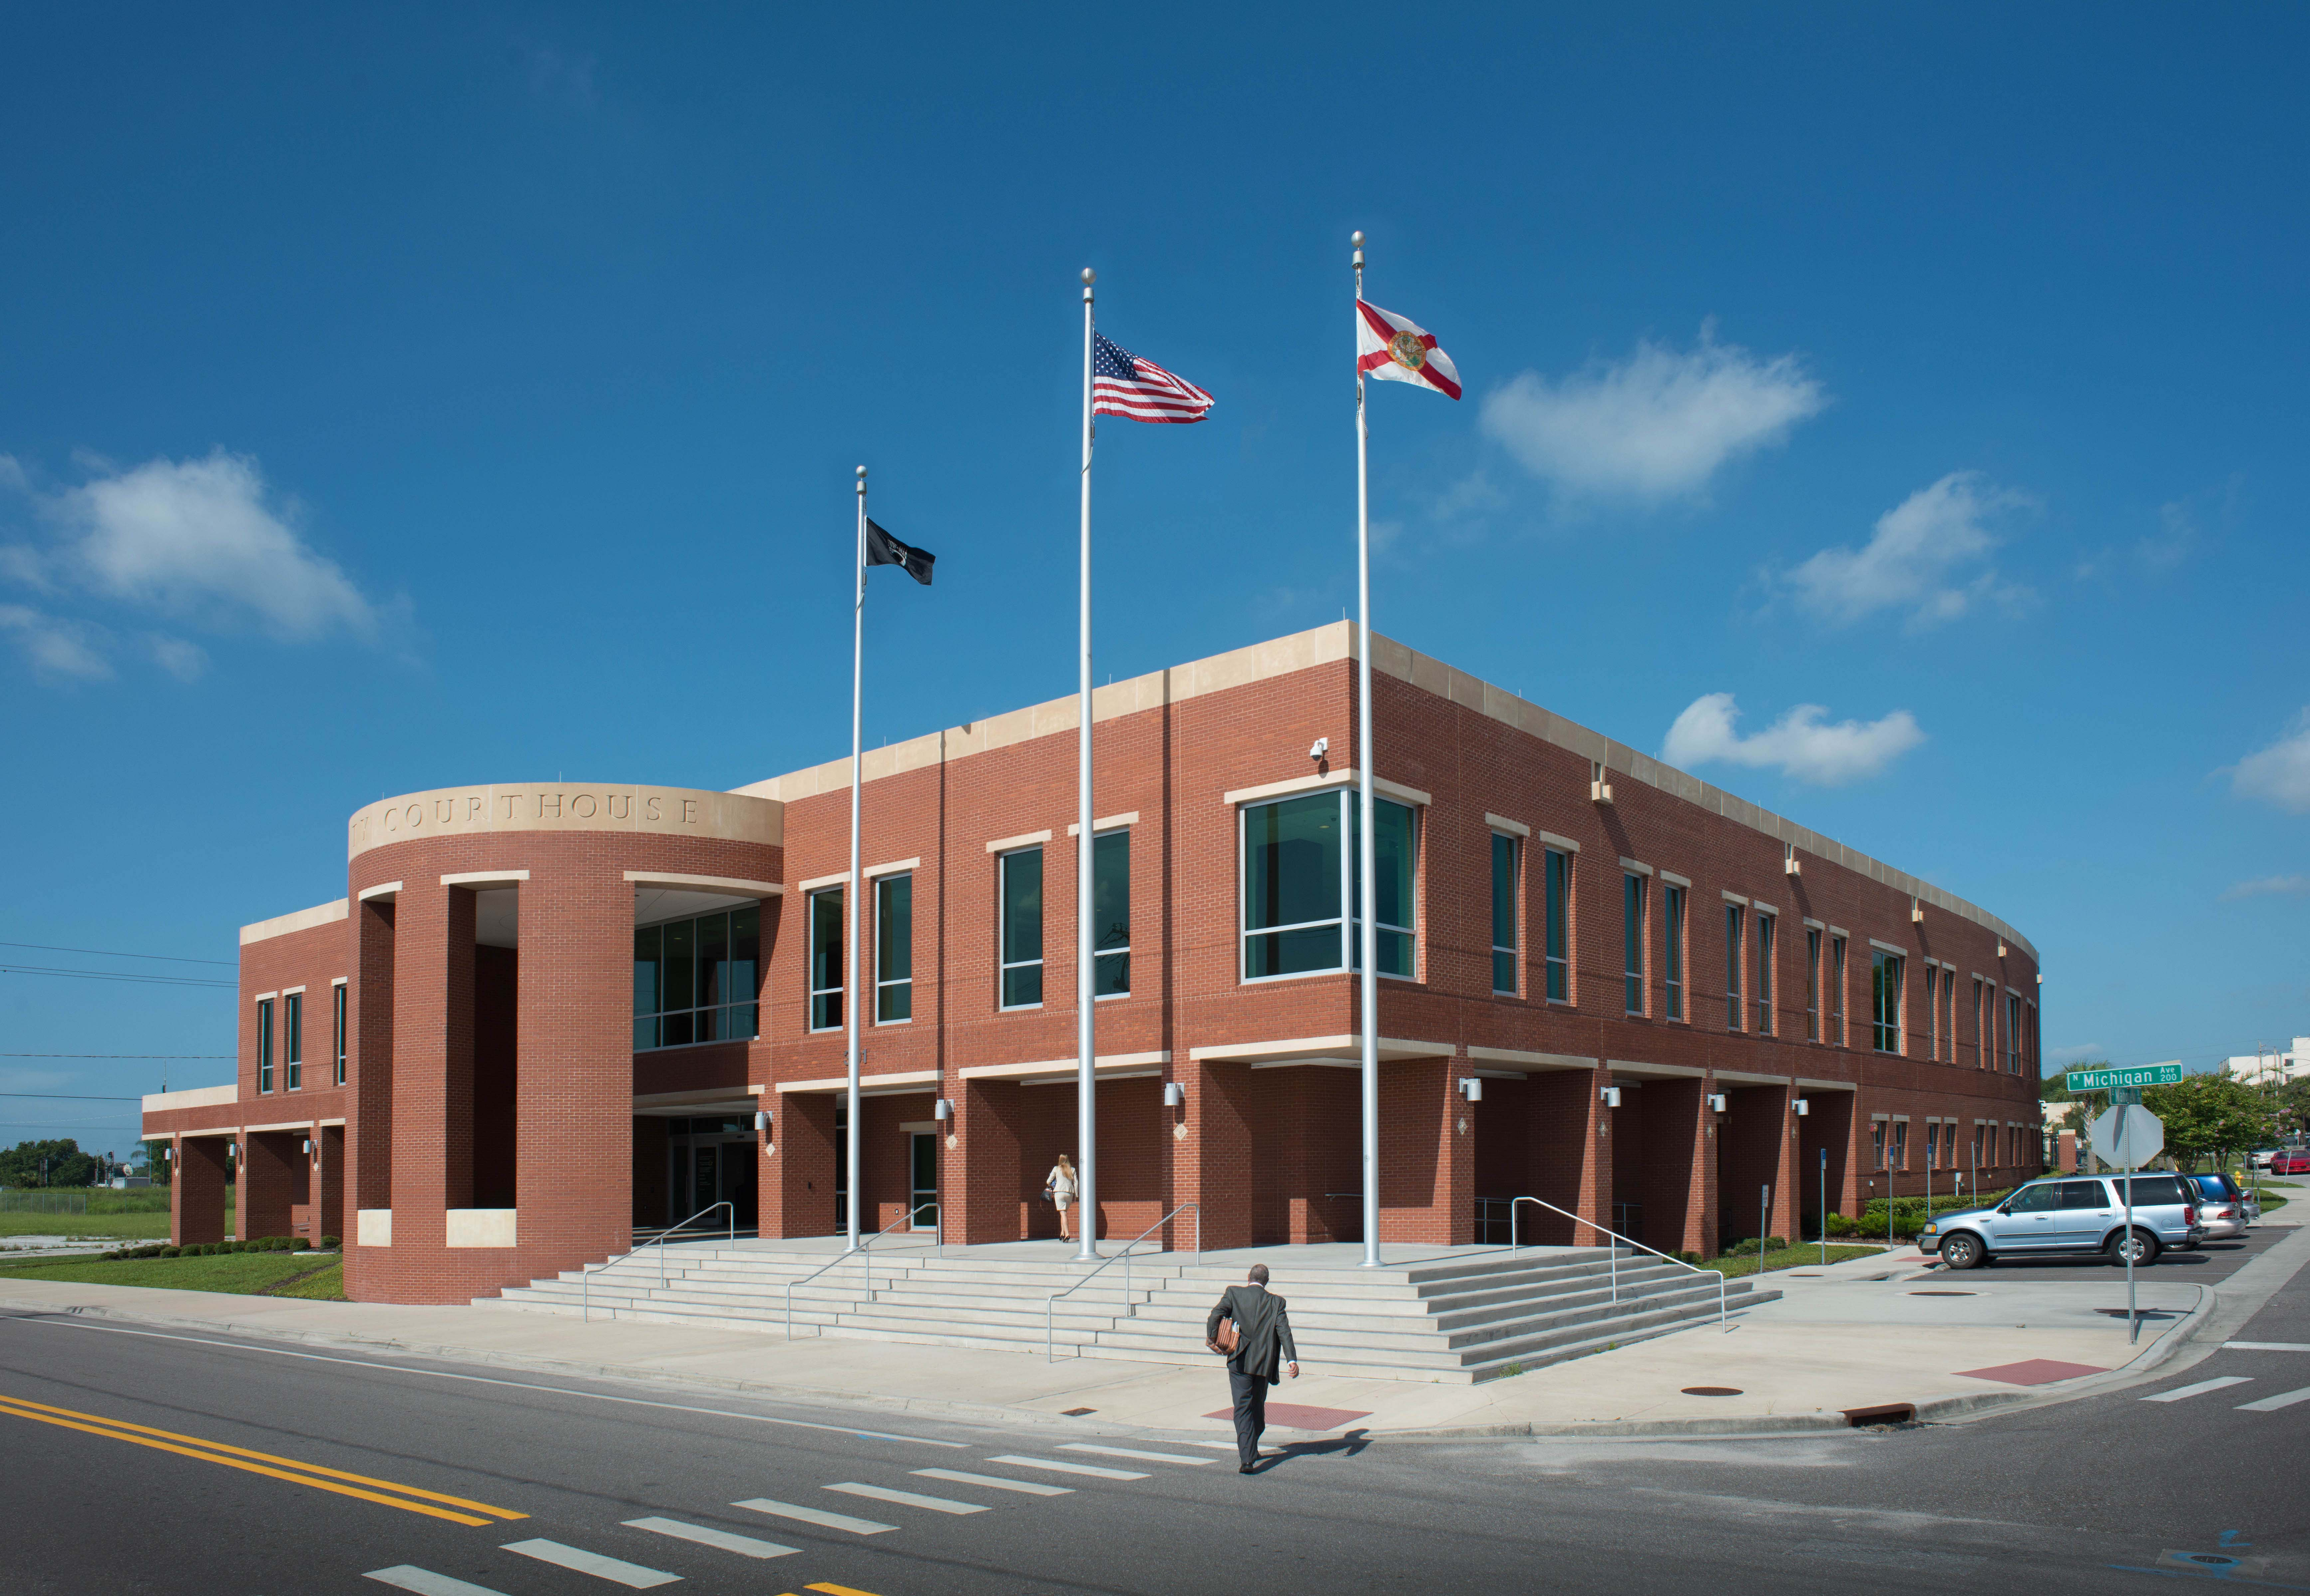 Plant City Courthouse